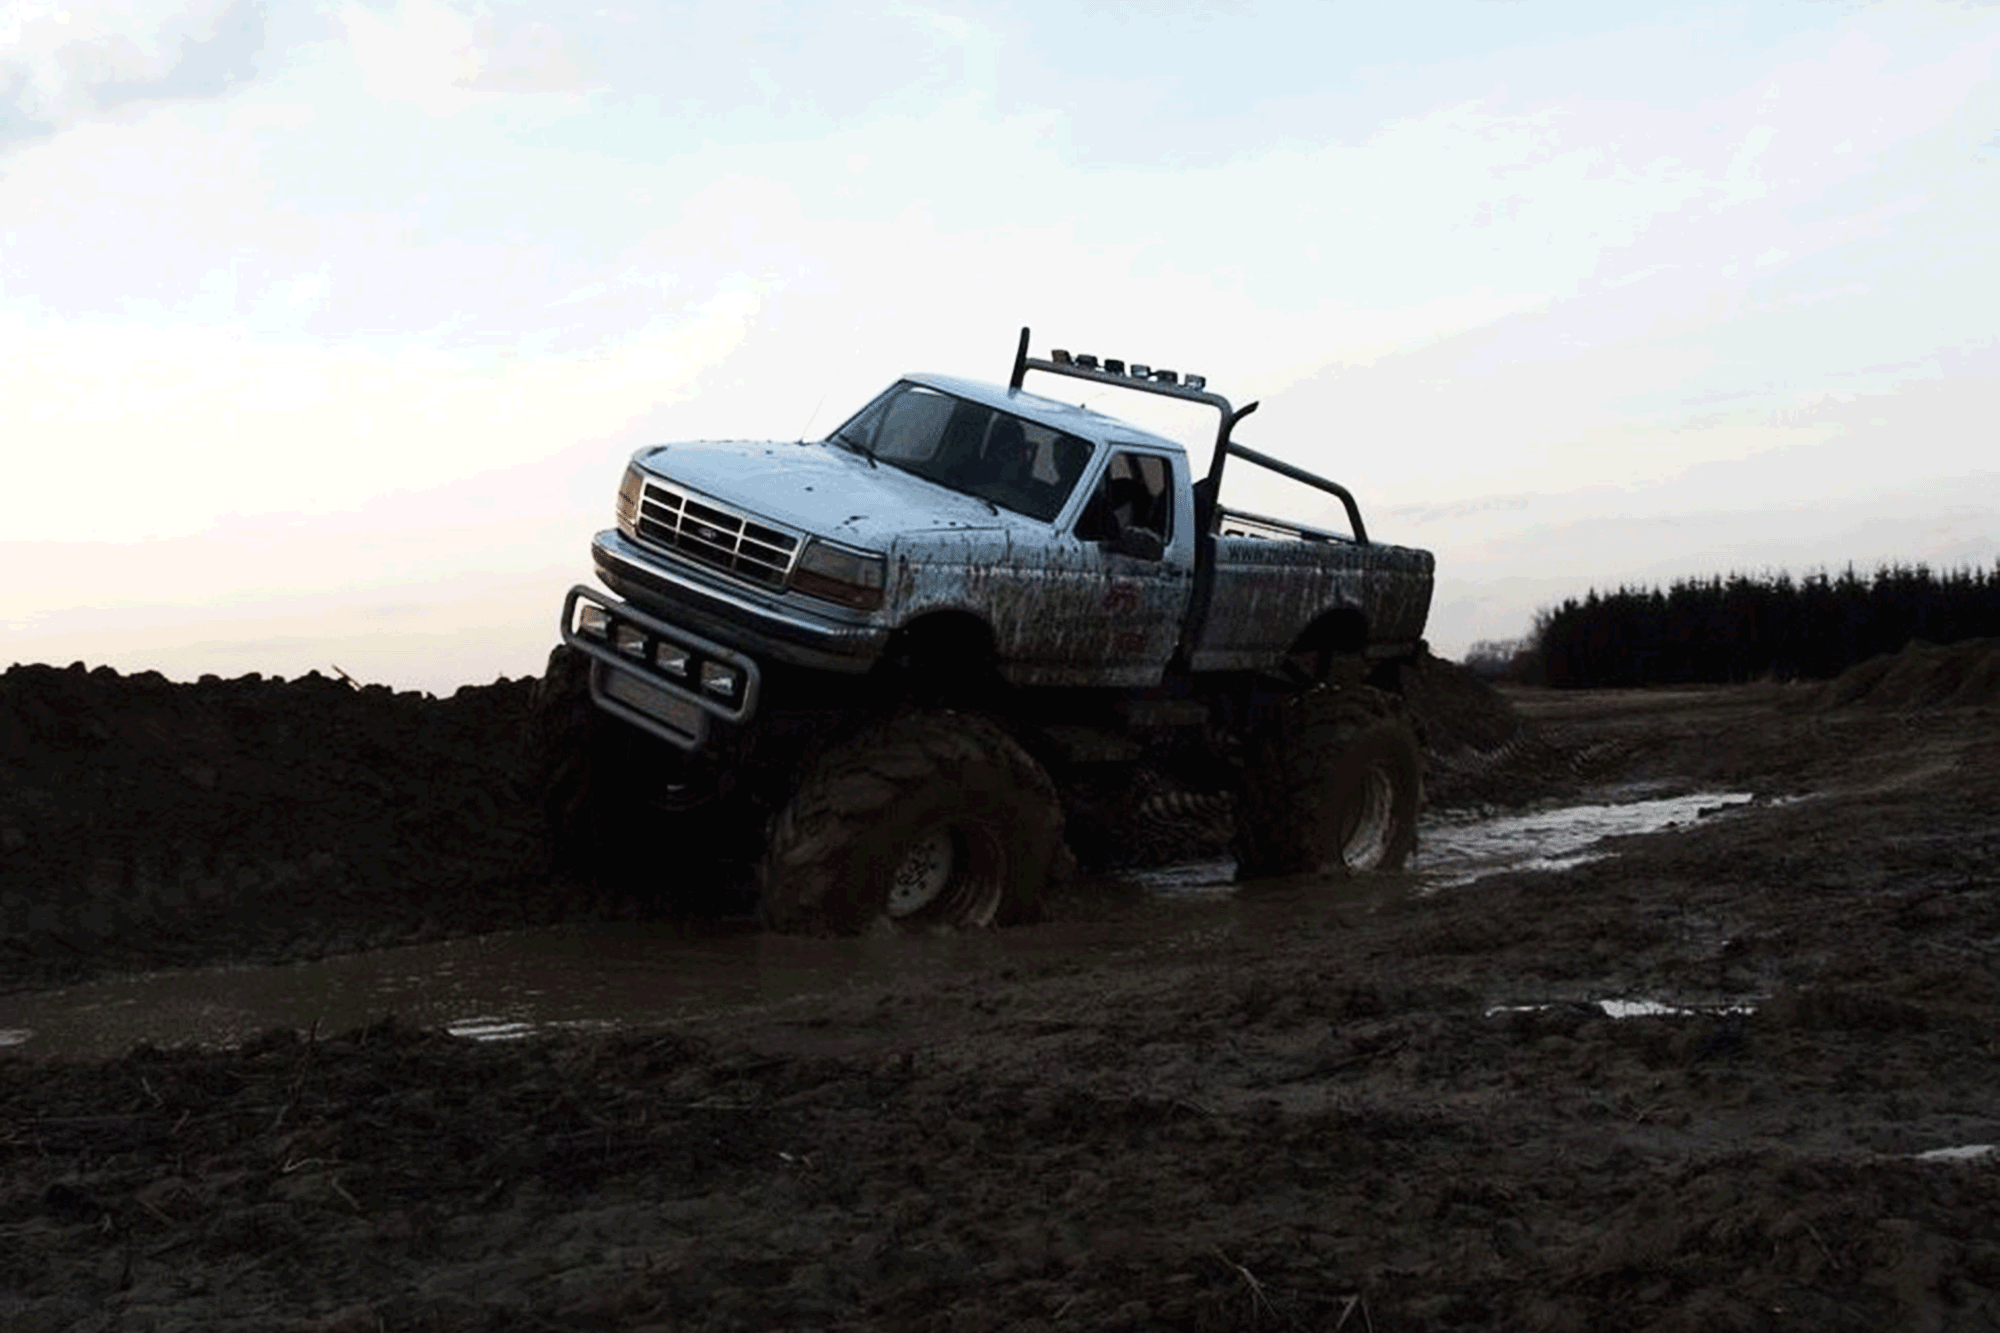 Monster Truck on mud during the sunset in Warsaw